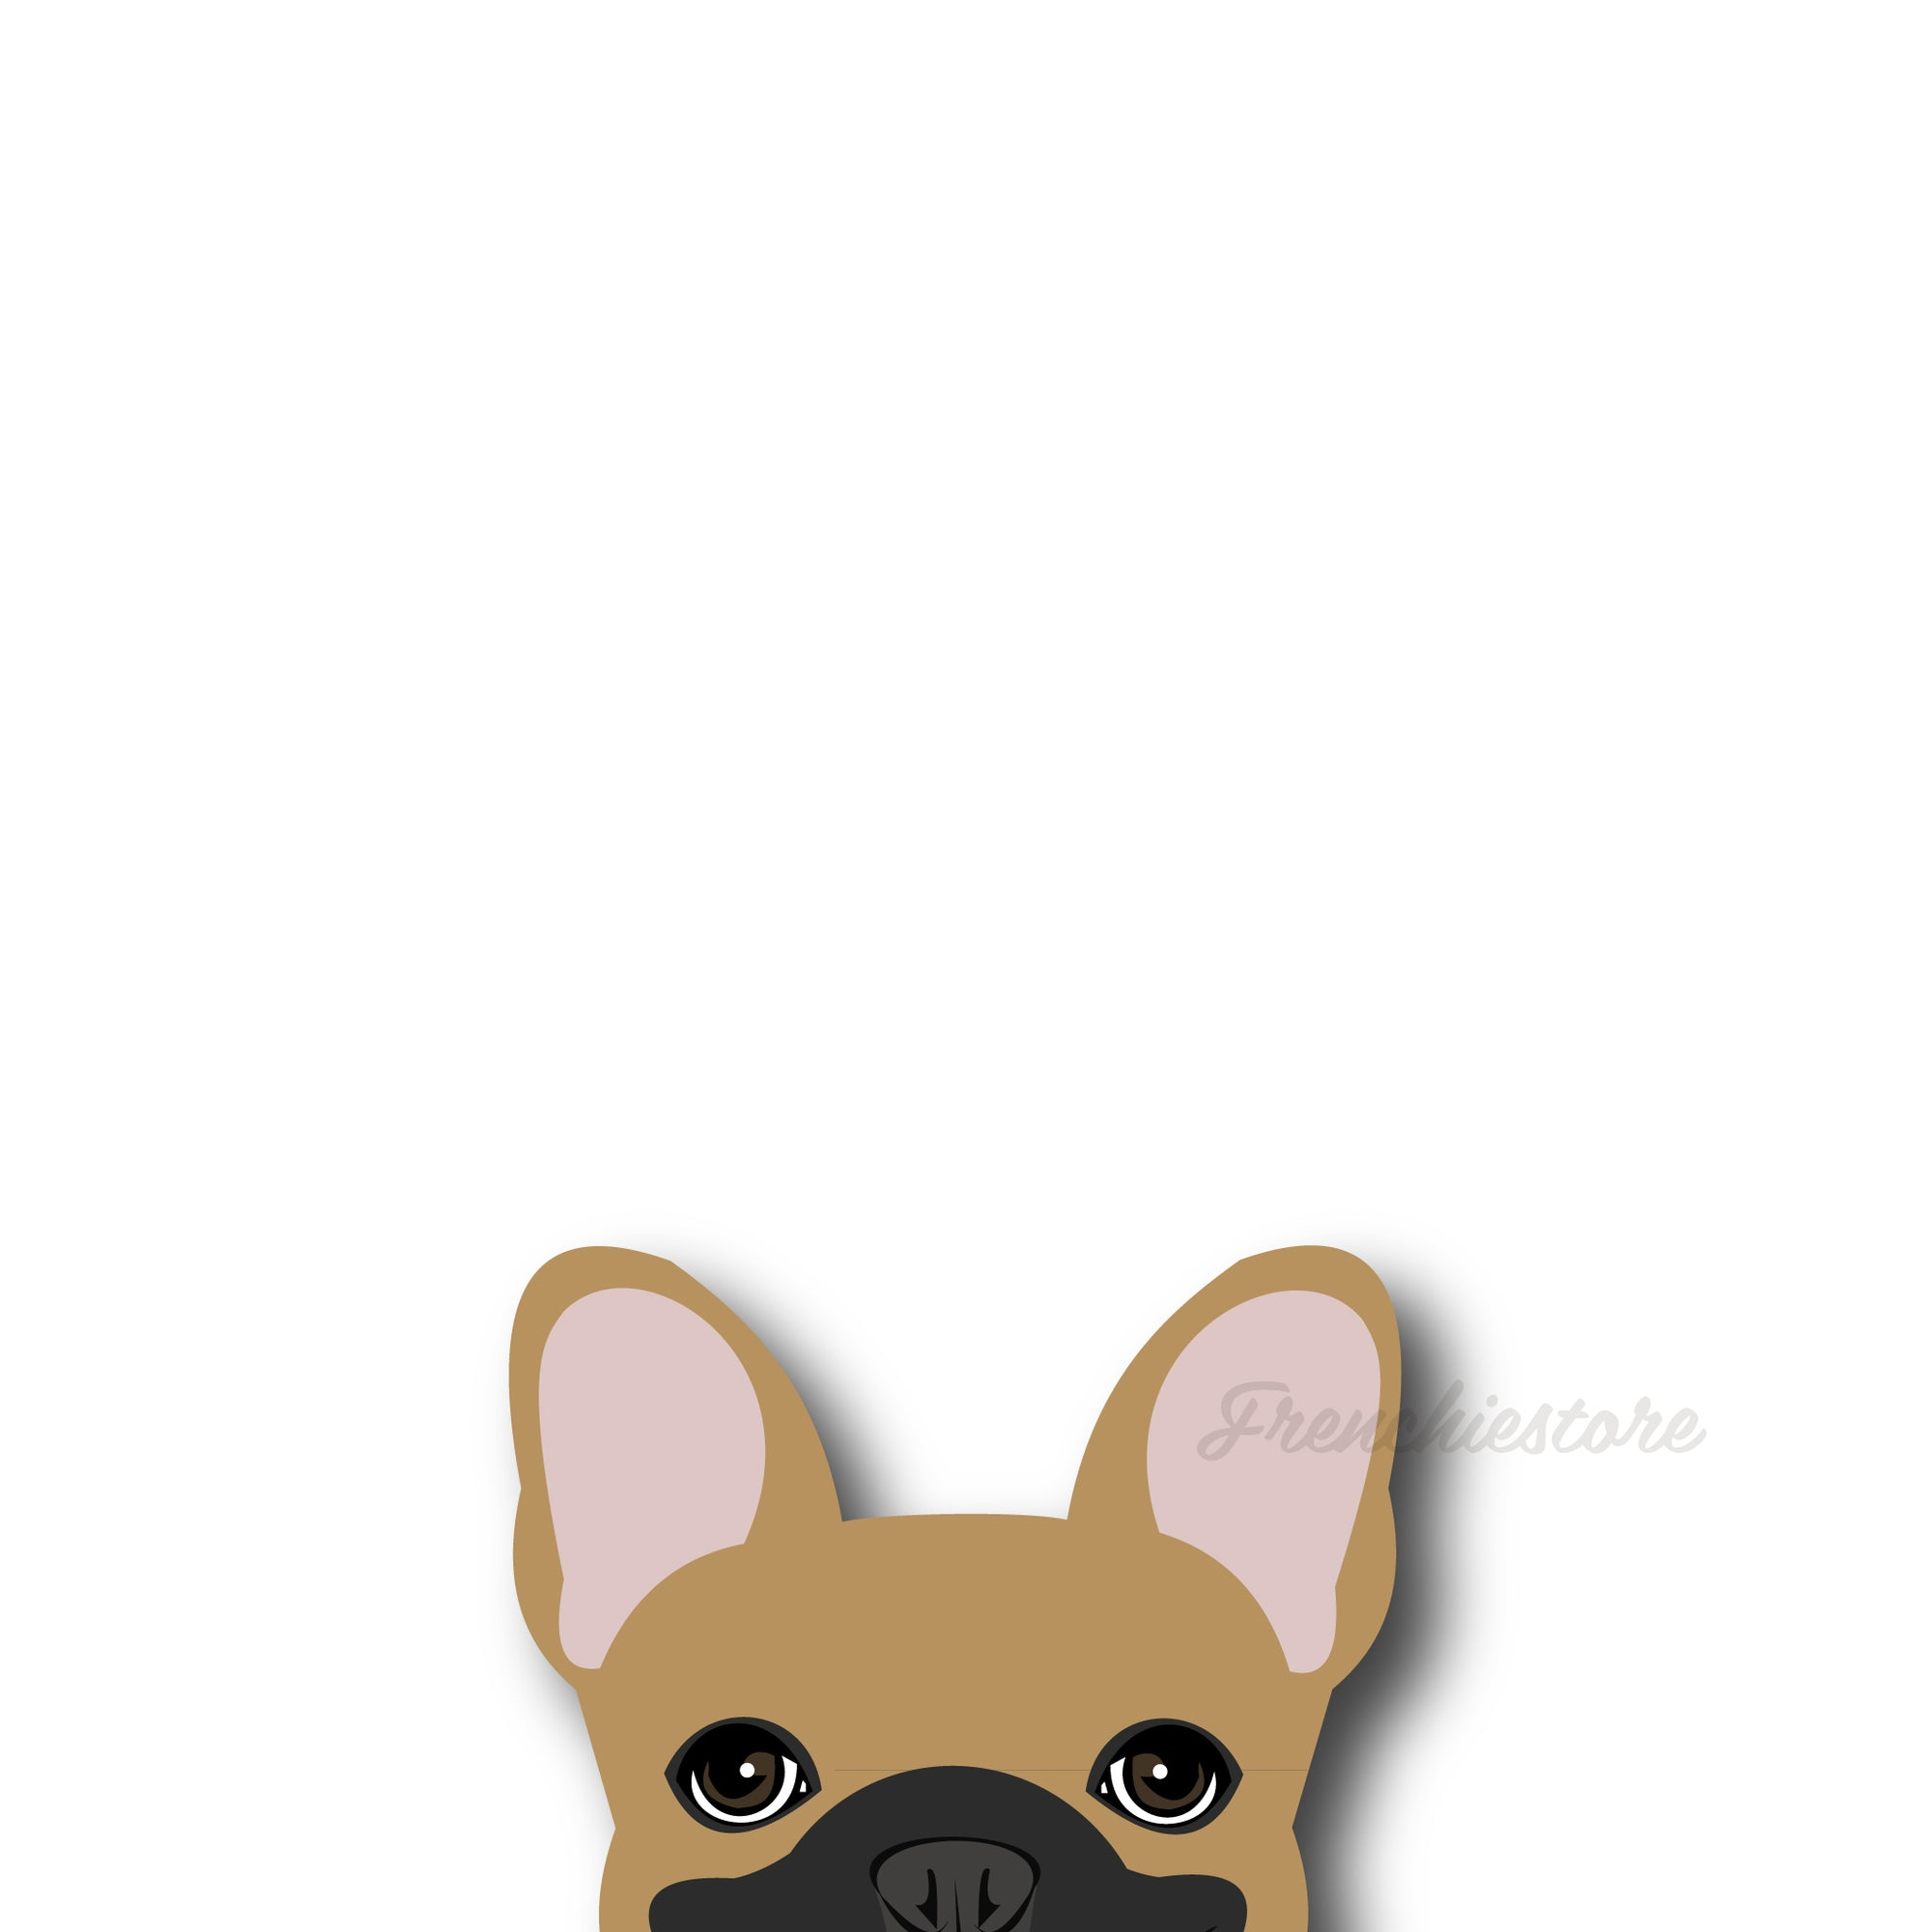 Frenchie Sticker | Frenchiestore | Fawn W/ Mask French Bulldog Car Decal, Frenchie Dog, French Bulldog pet products